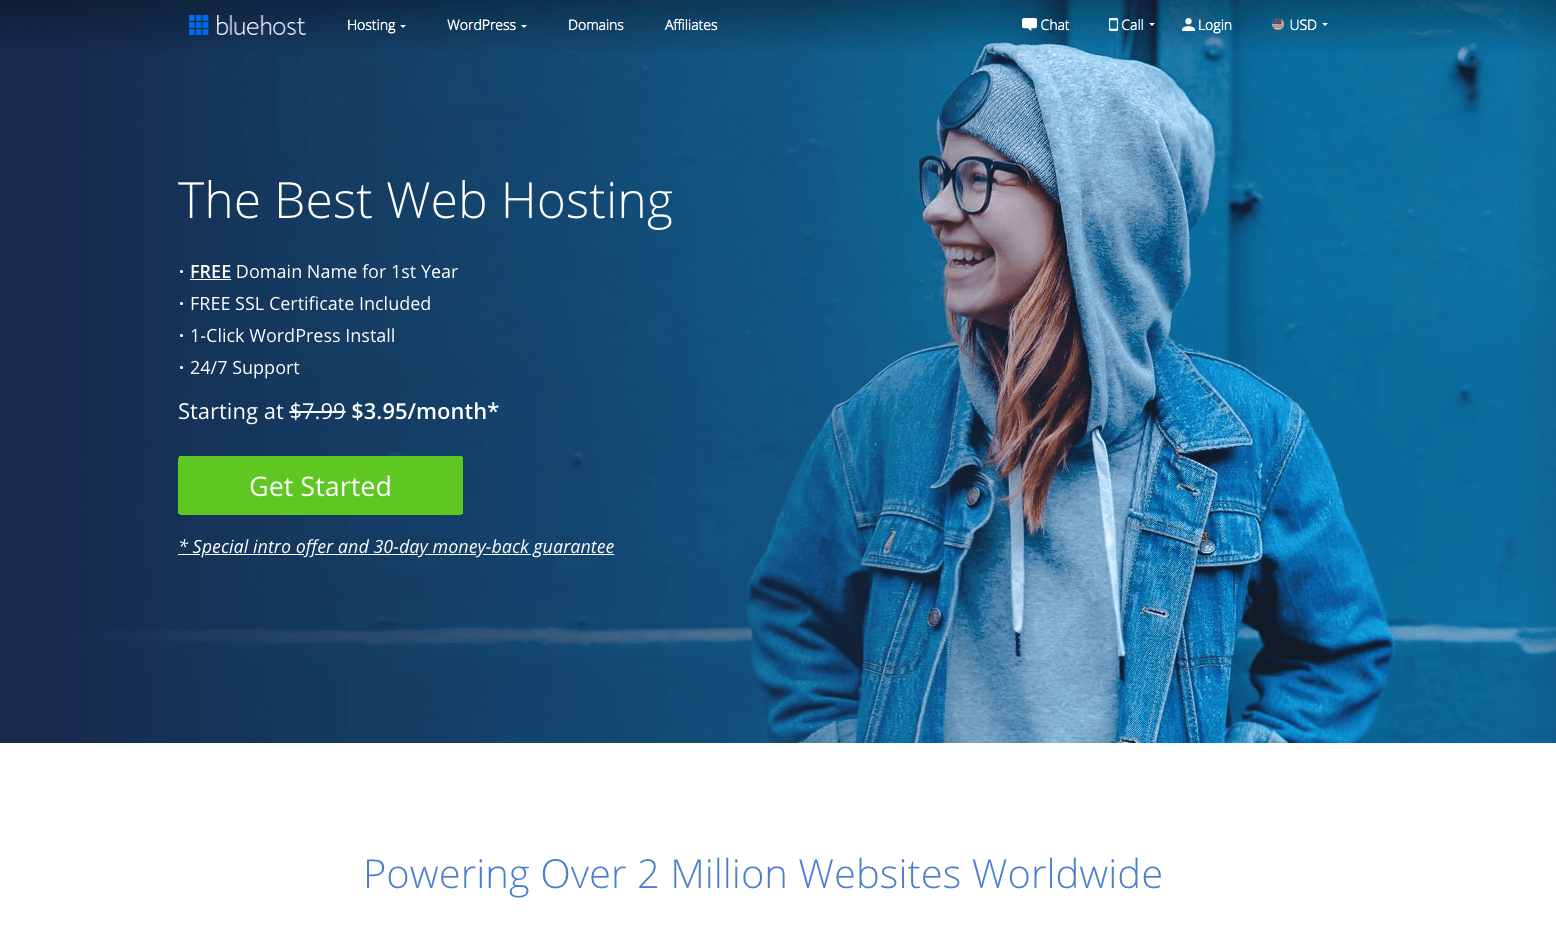 Get Webhosting from Bluehost